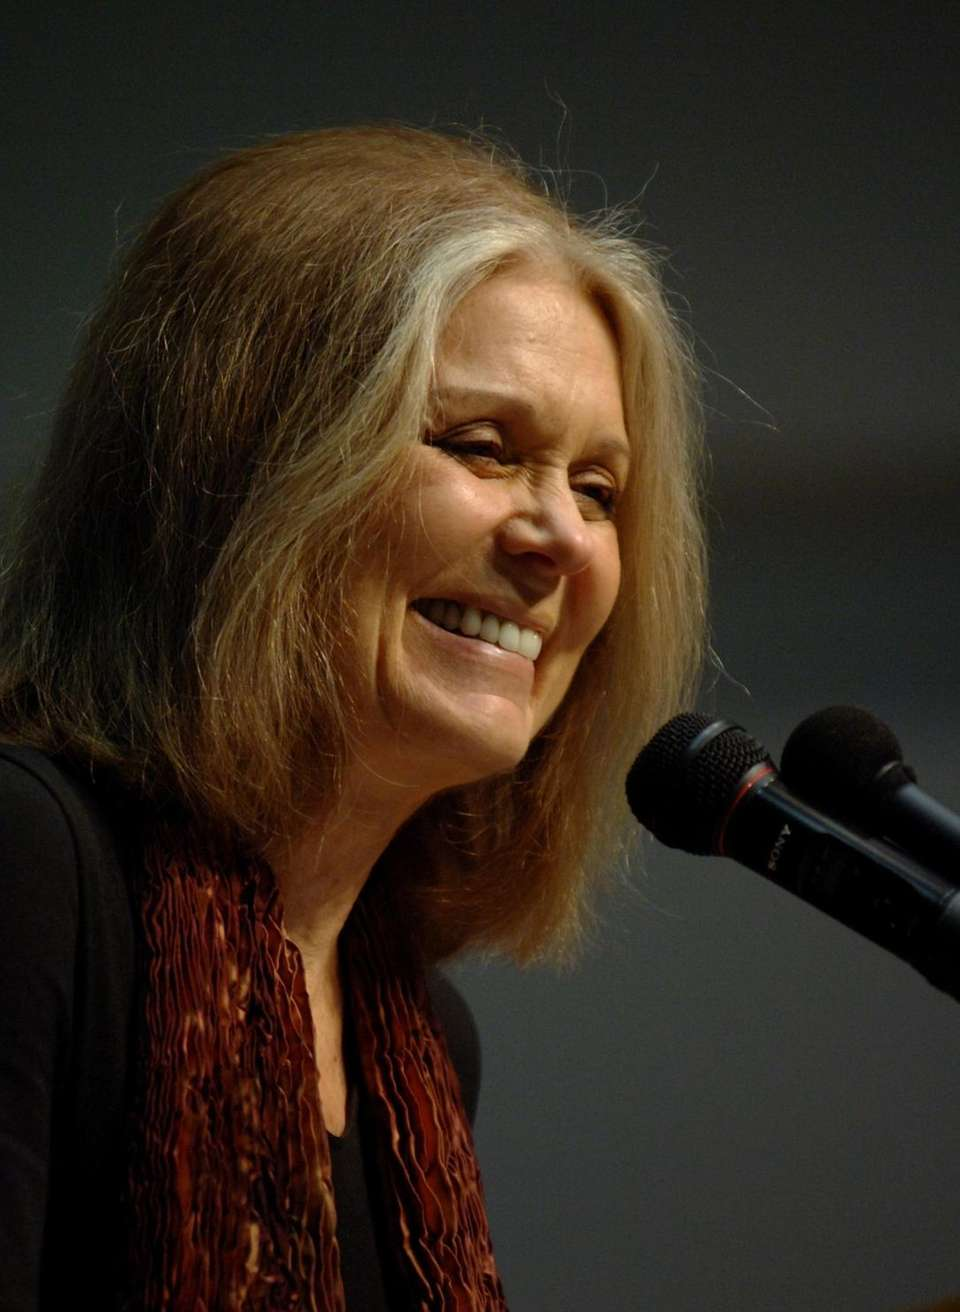 Noted feminist and writer Gloria Steinem, who has